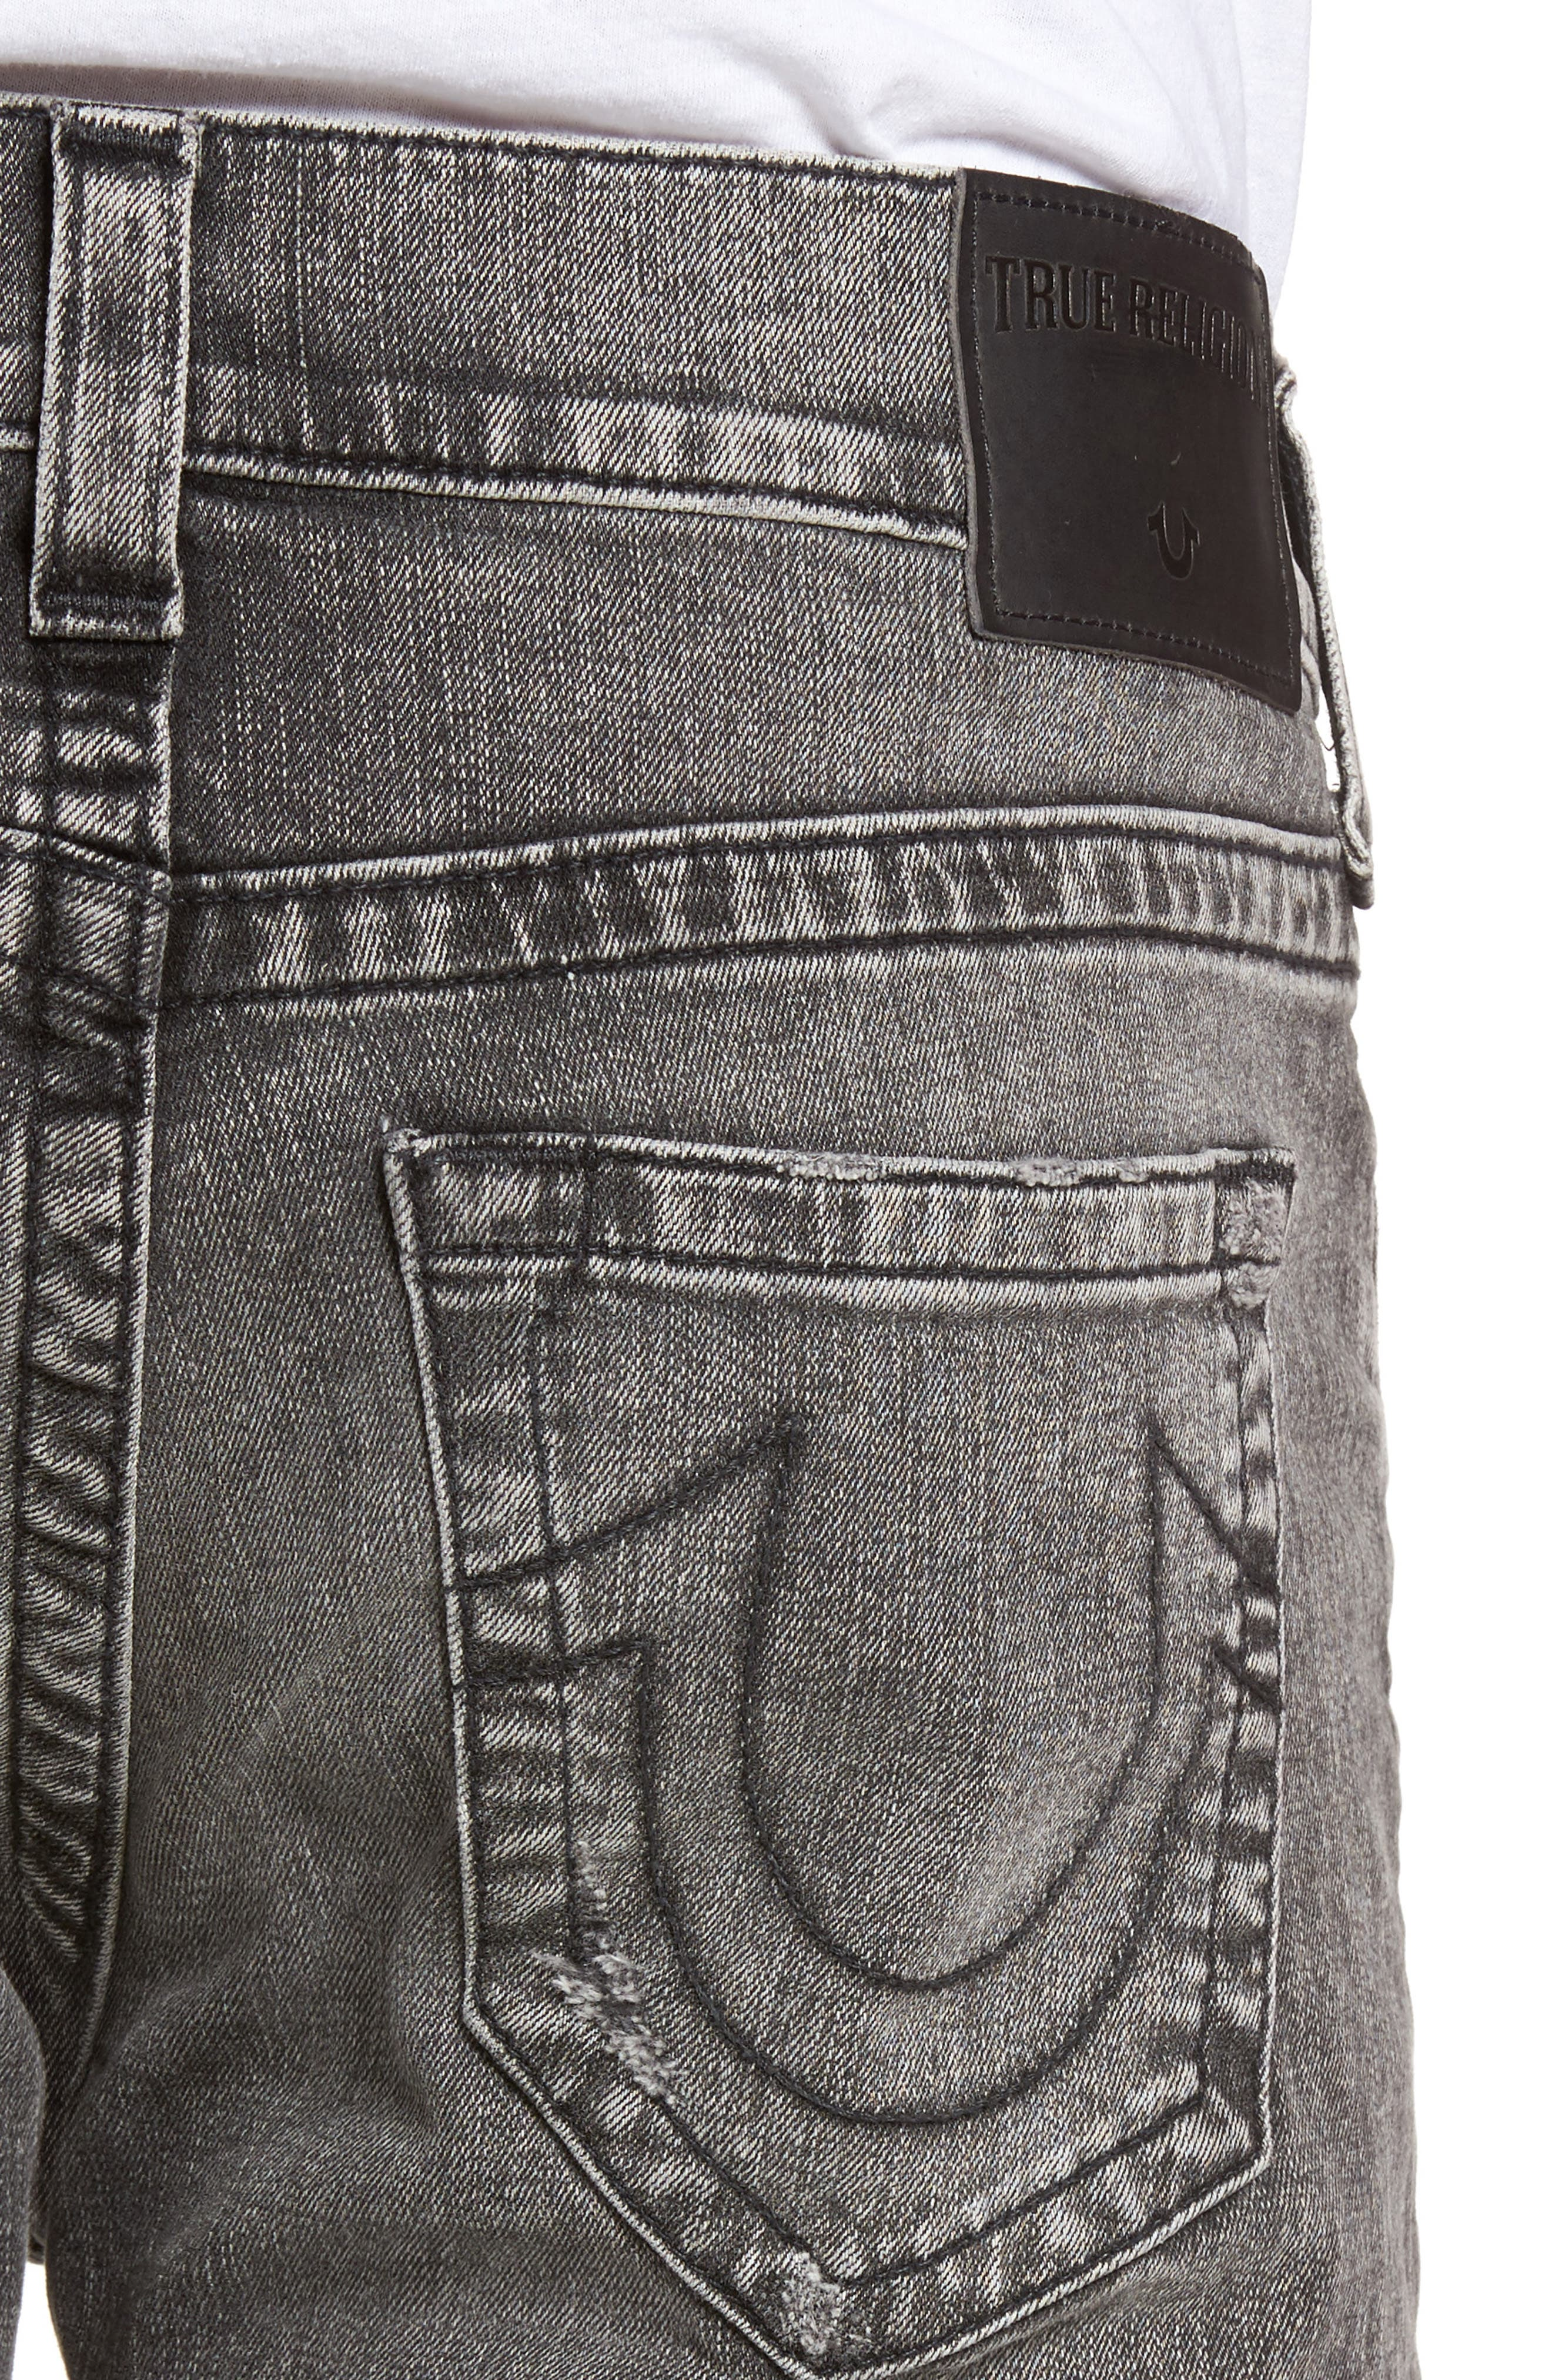 Rocco Skinny Fit Jeans,                             Alternate thumbnail 4, color,                             408